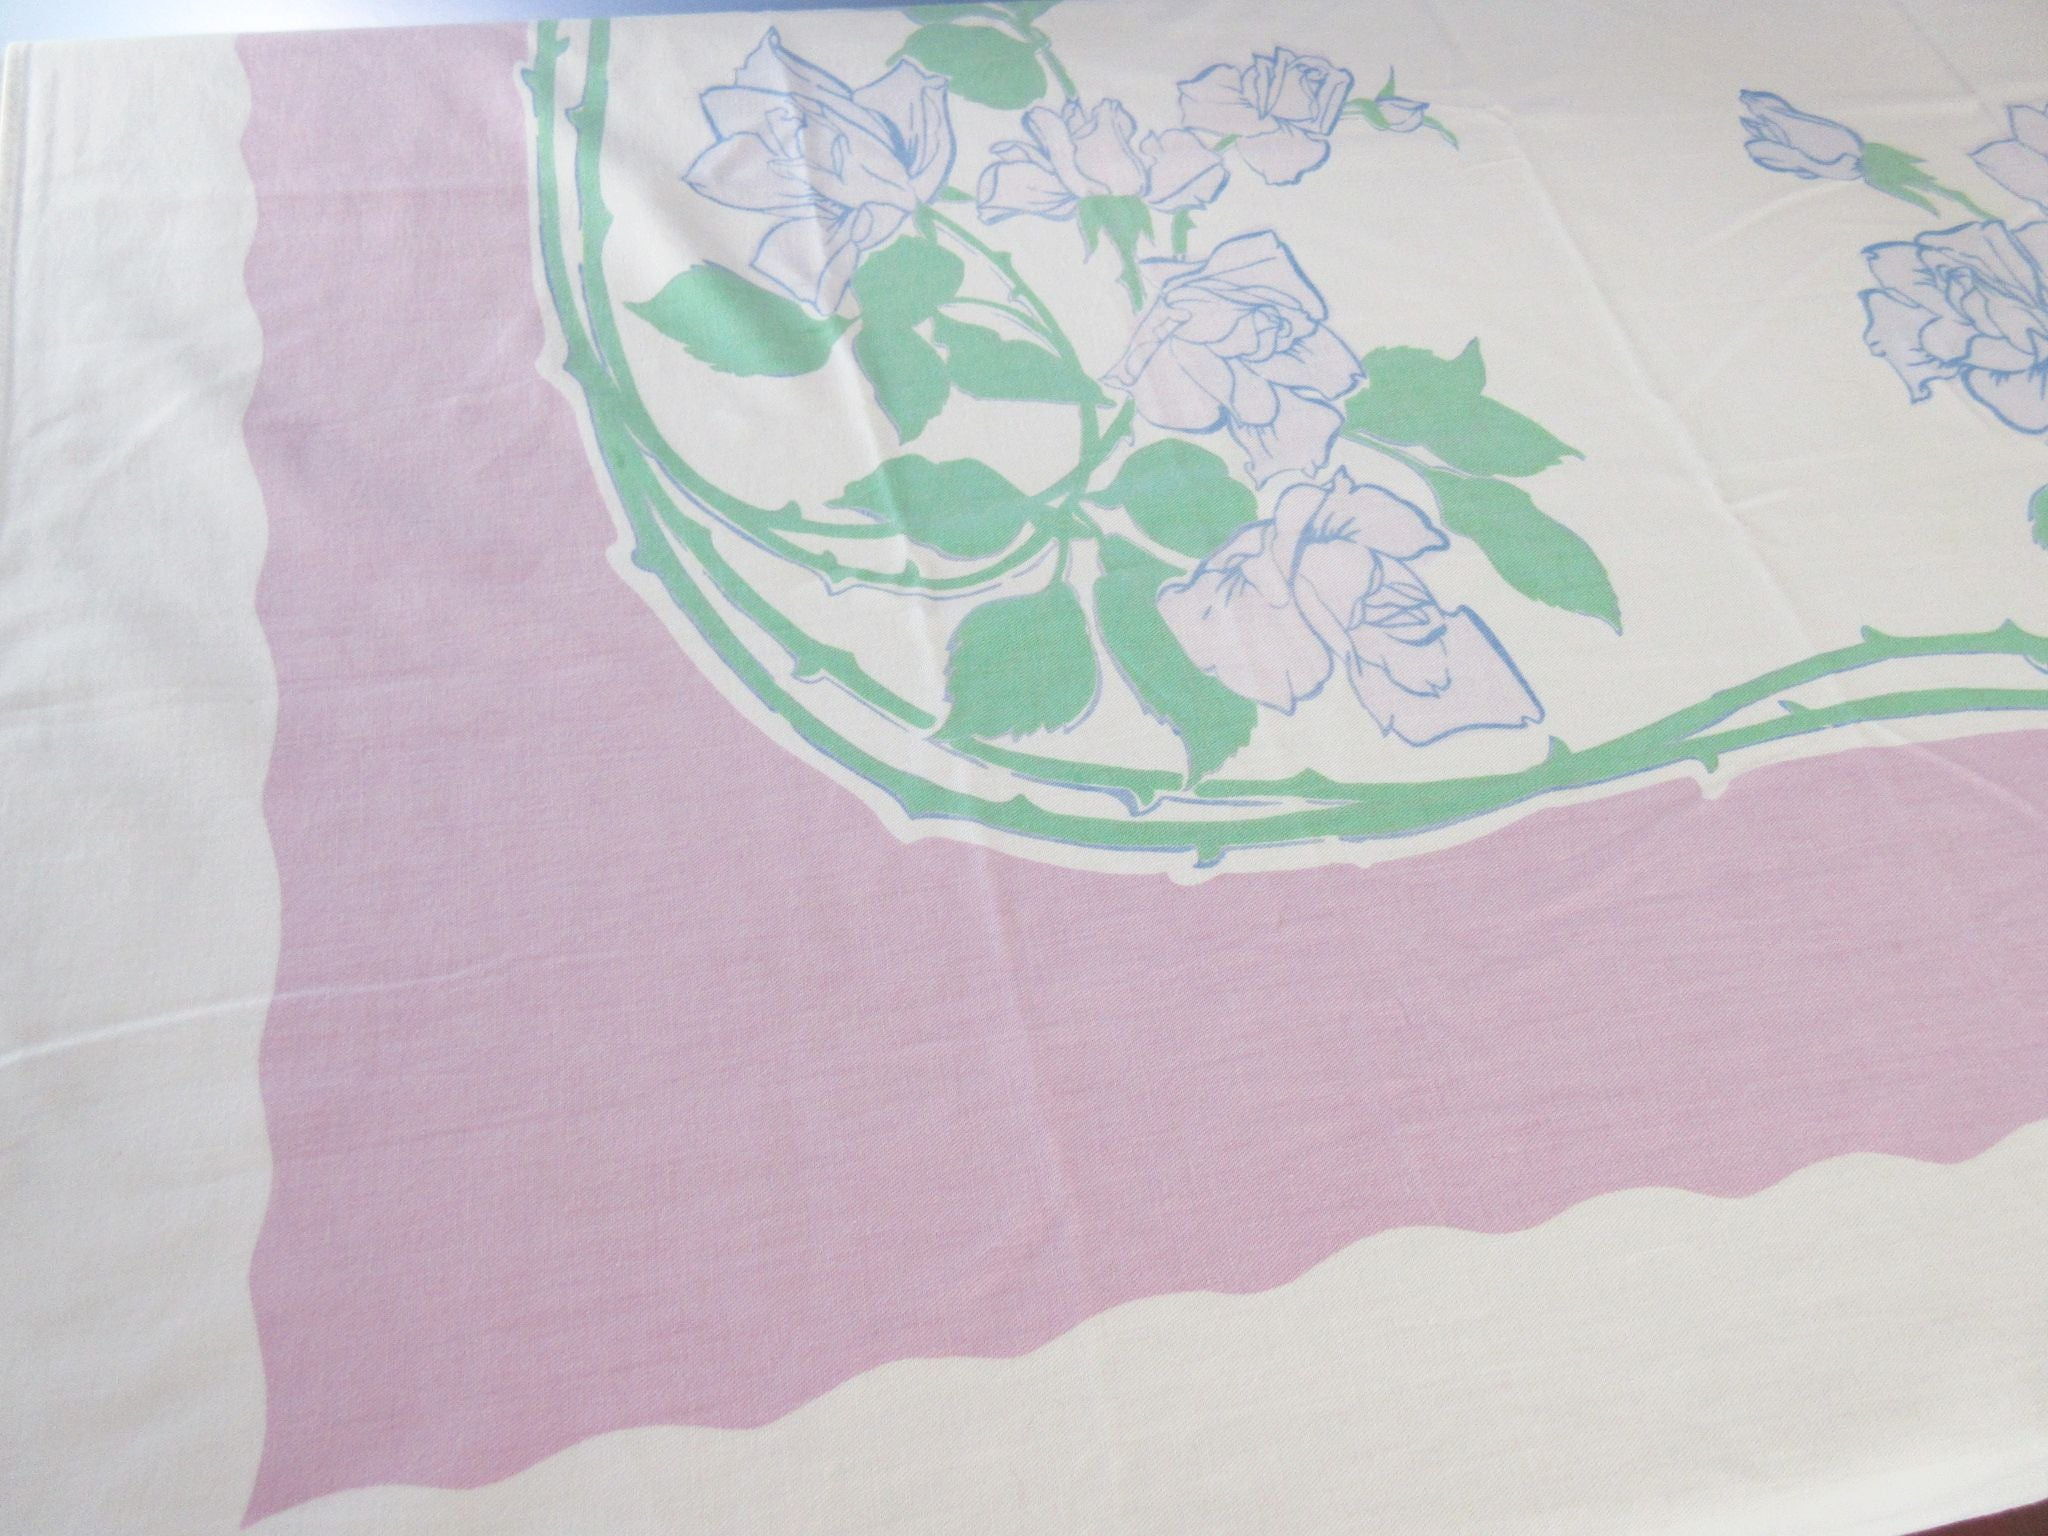 Shabby Lavender Roses on Mauve Floral Vintage Printed Tablecloth (62 X 54)